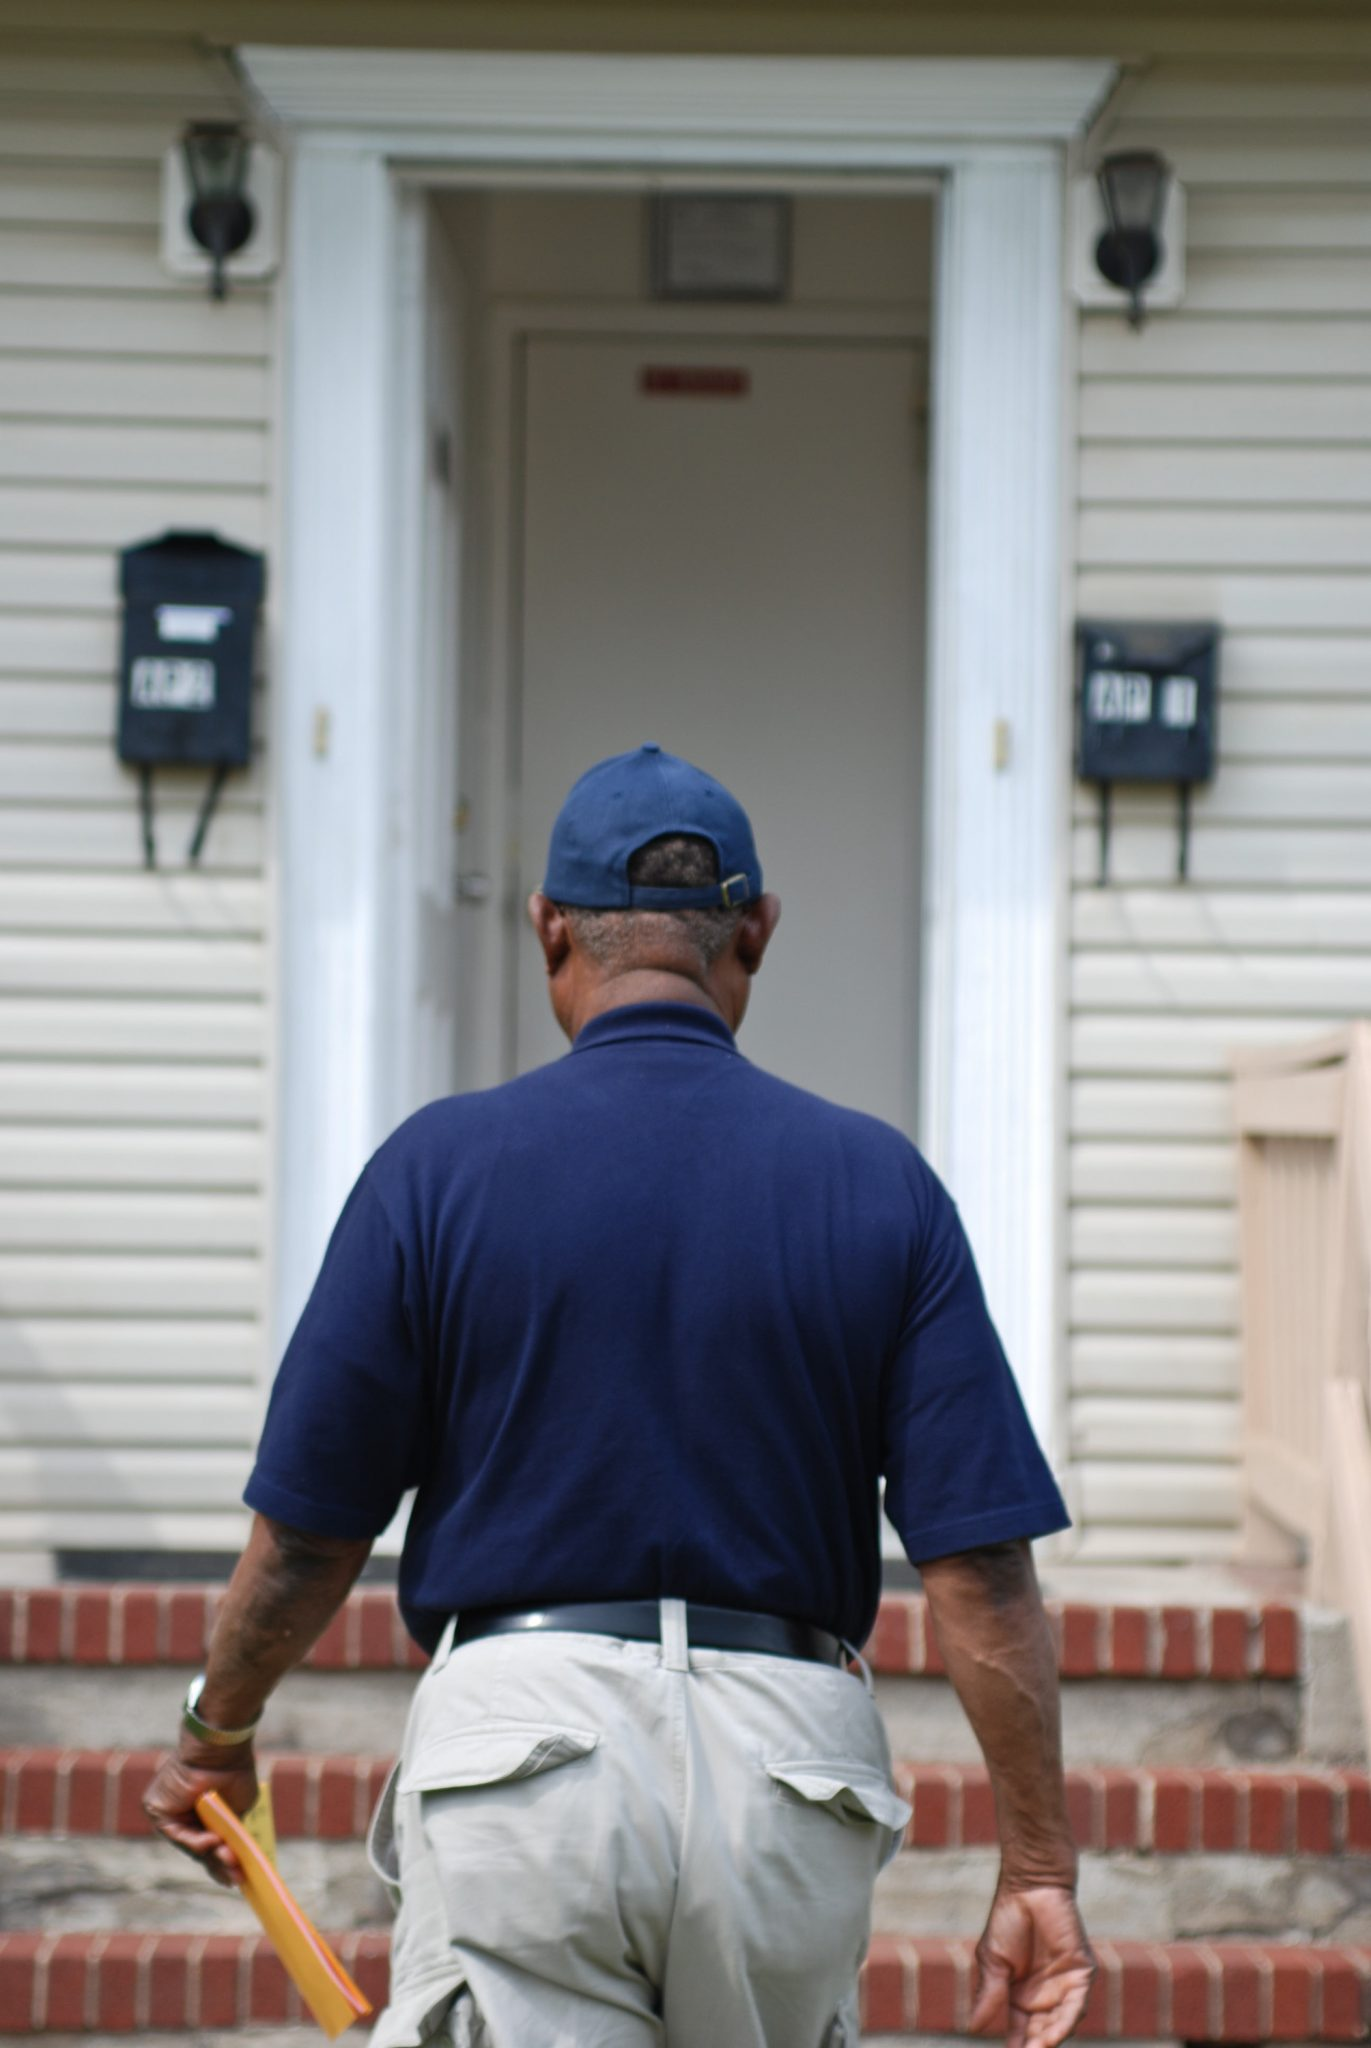 ADT Offers $25,000 Reward For Fraudulent Security Salespeople ...